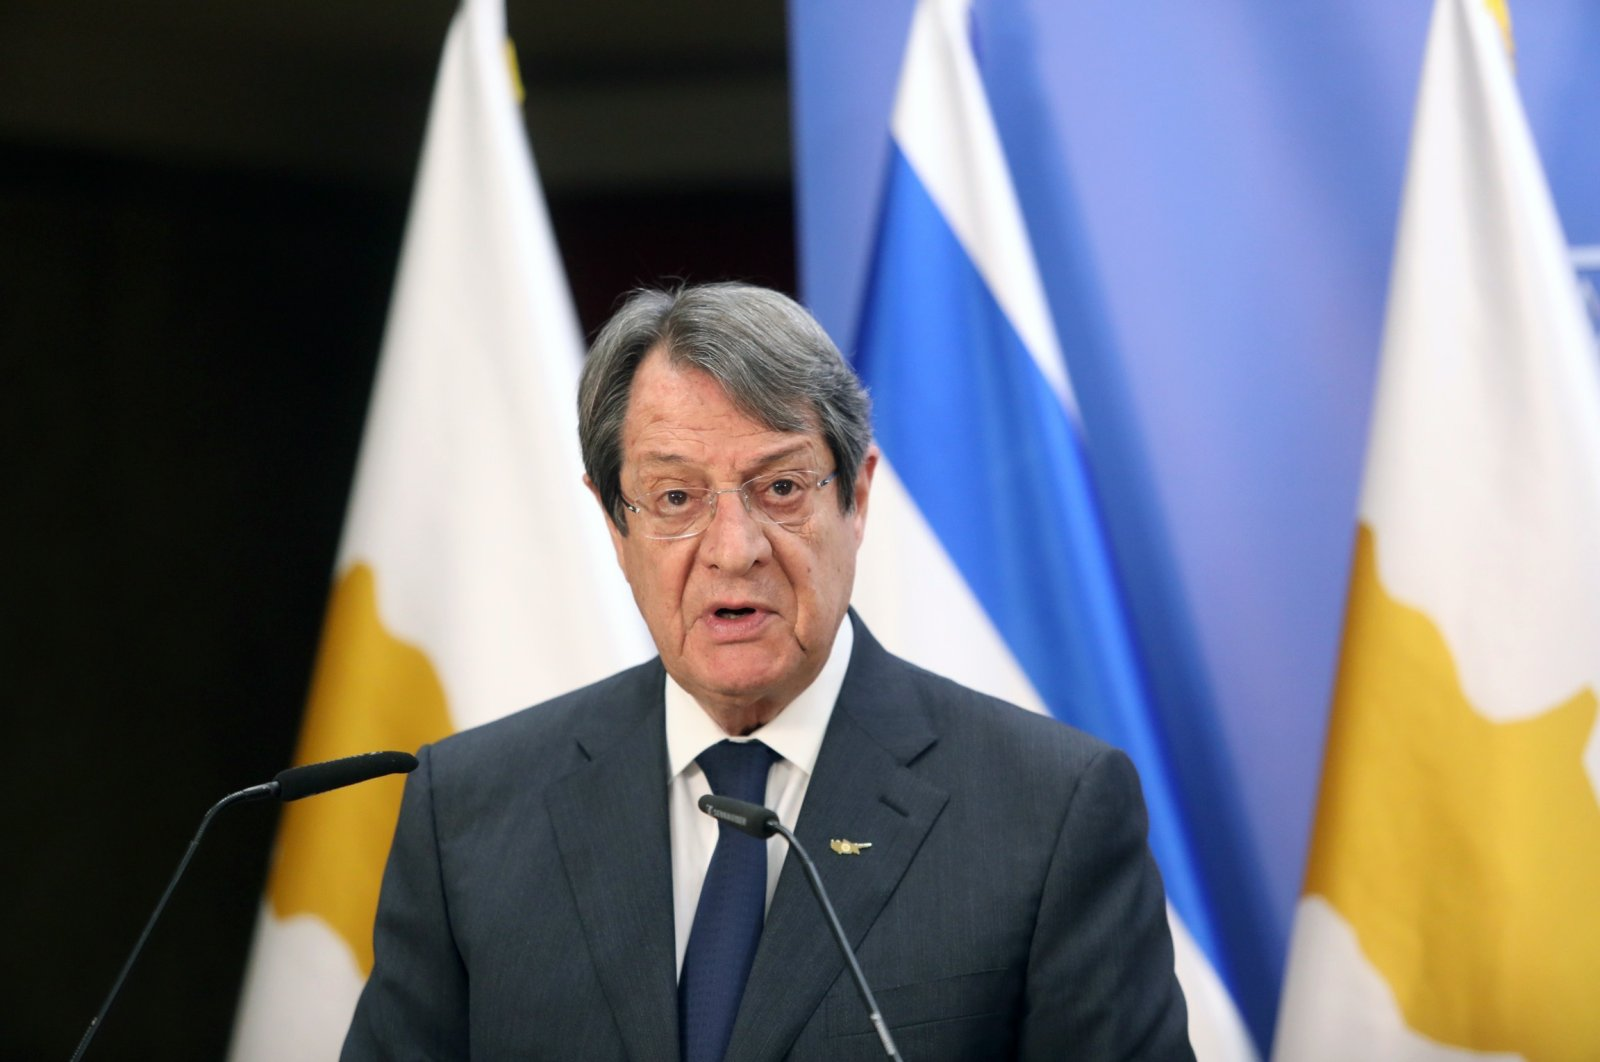 Greek Cypriot leader Nicos Anastasiades delivers a statement after meeting with Israeli Prime Minister Benjamin Netanyahu in Jerusalem, Sunday, Feb. 14, 2021. (AP File Photo)